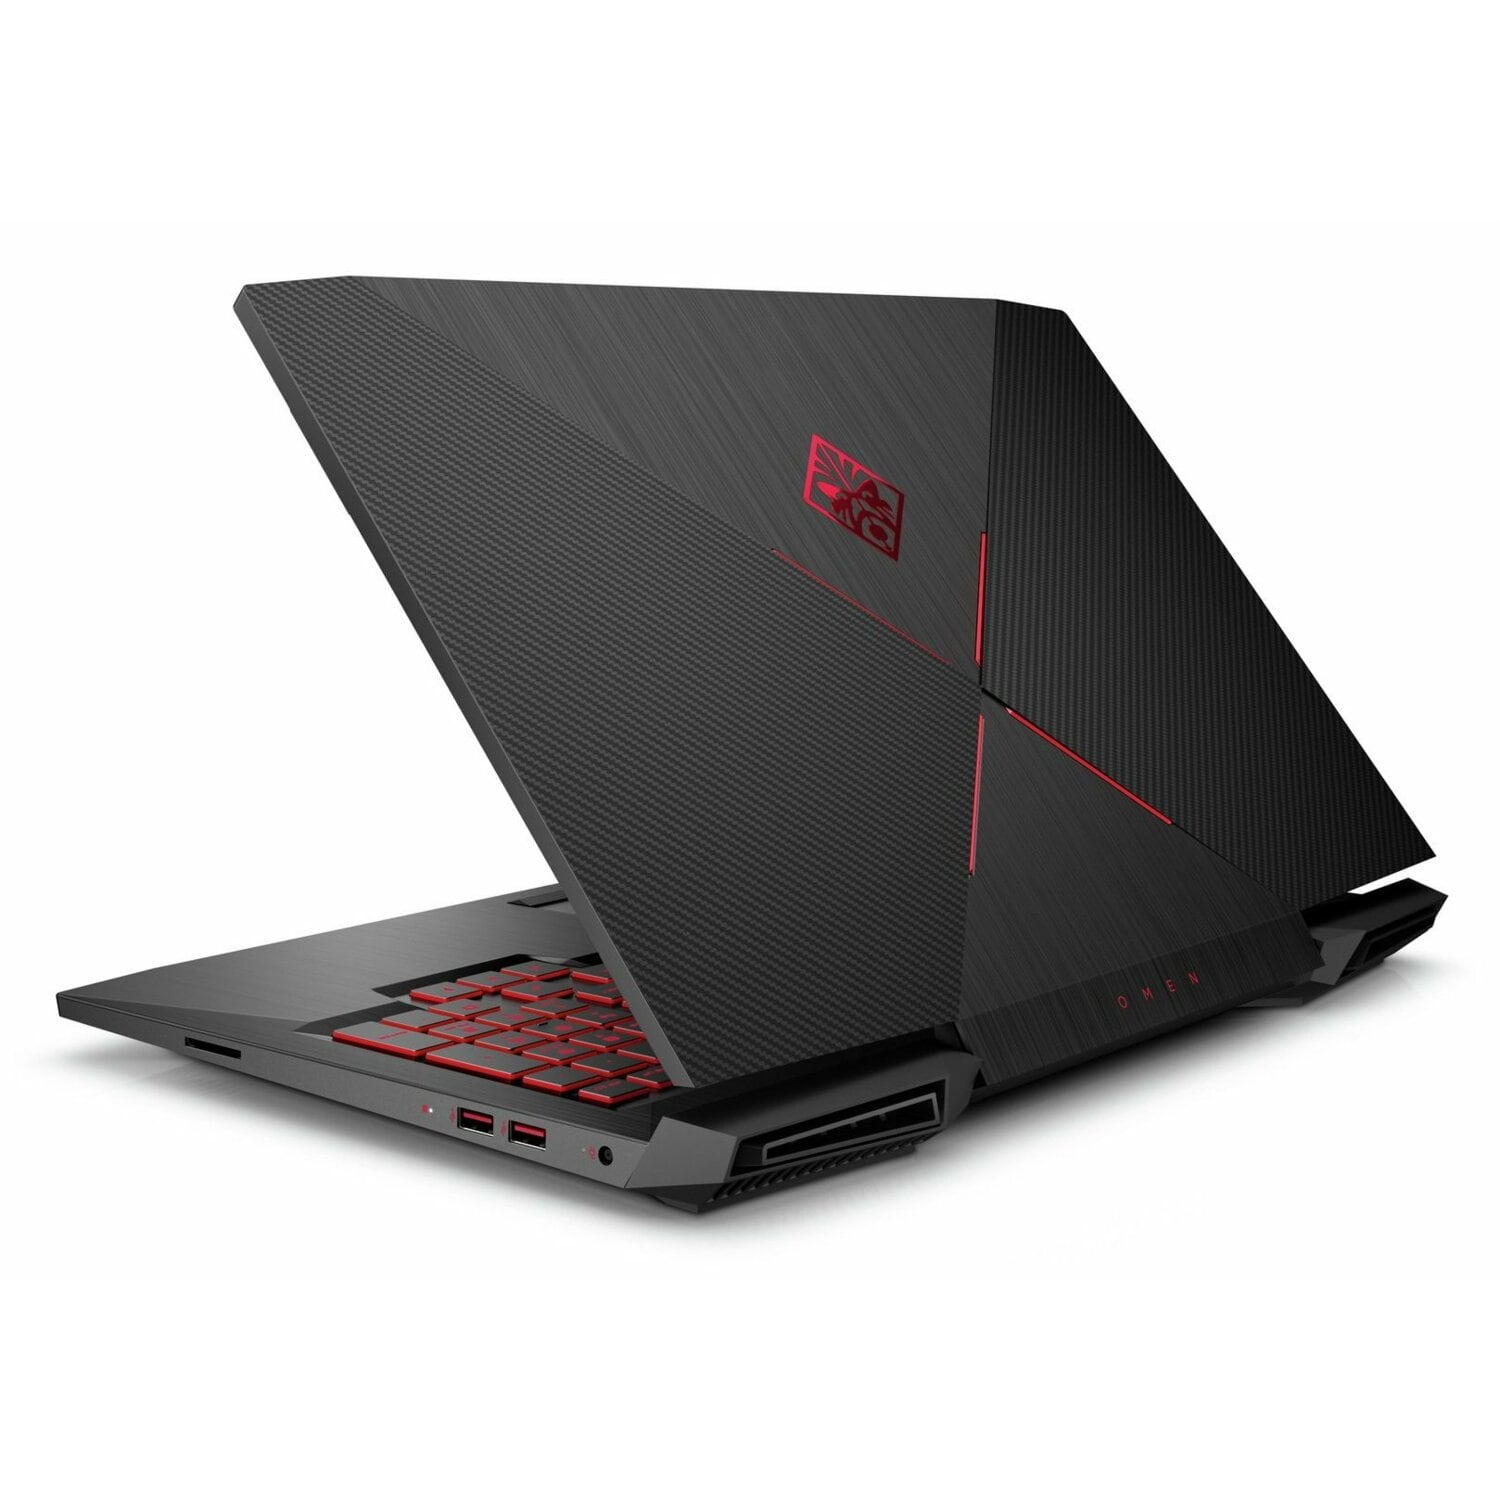 Laptop HP Omen 15-ce011nw i7-7700HQ/8GB/1TB/GTX1060/Win10